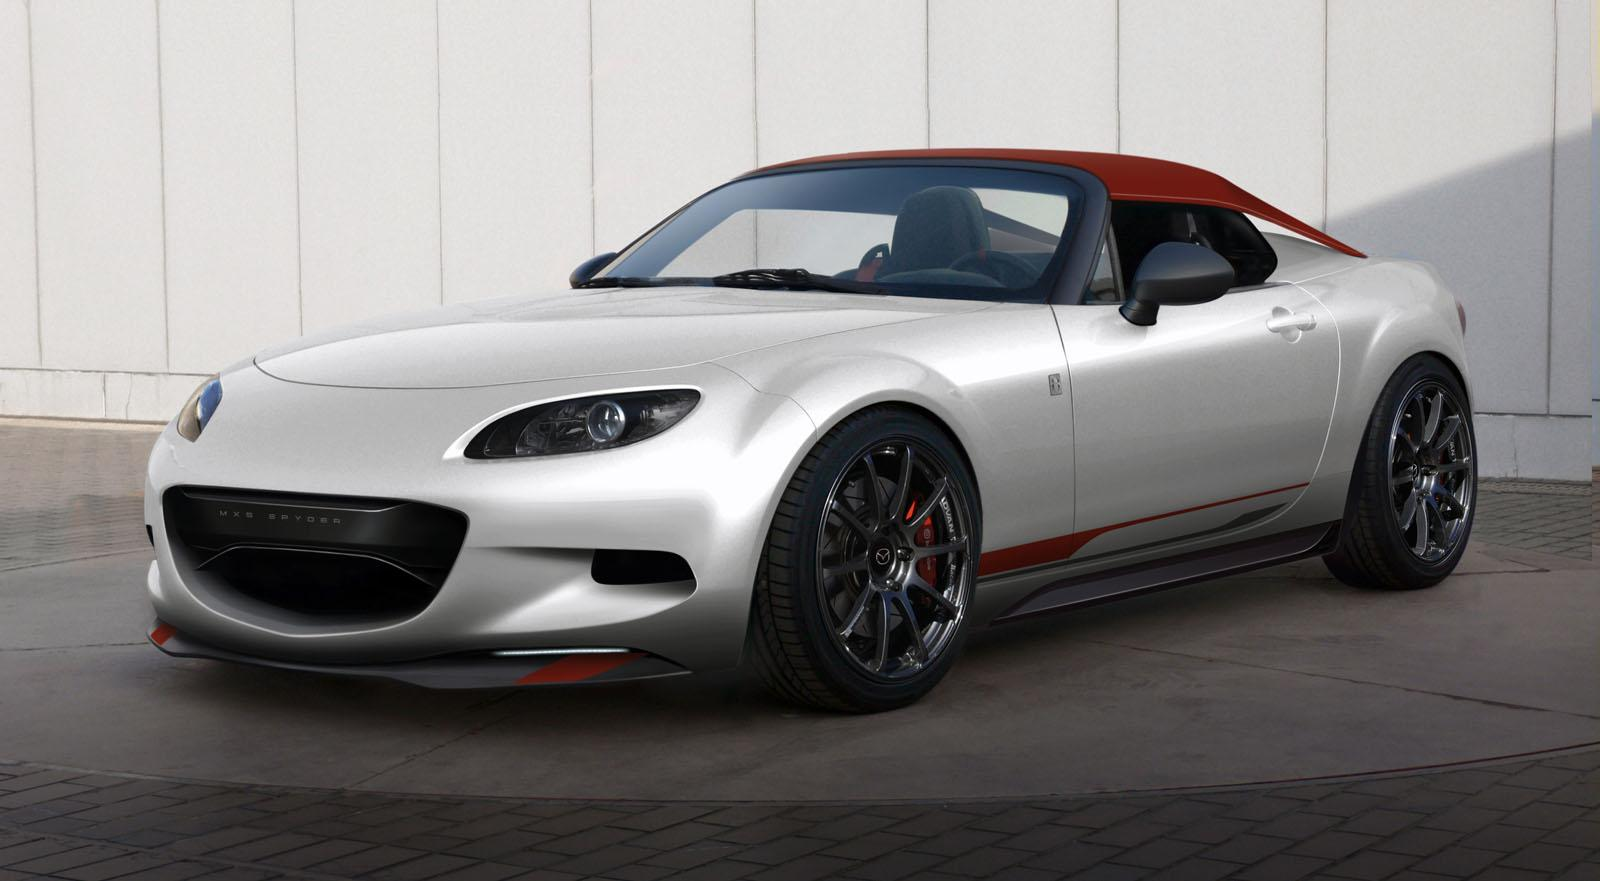 2011 Mazda MX 5 Spyder 2011 Mazda MX 5 Spyder & Turbo2 to Be Showcased at SEMA Car Show